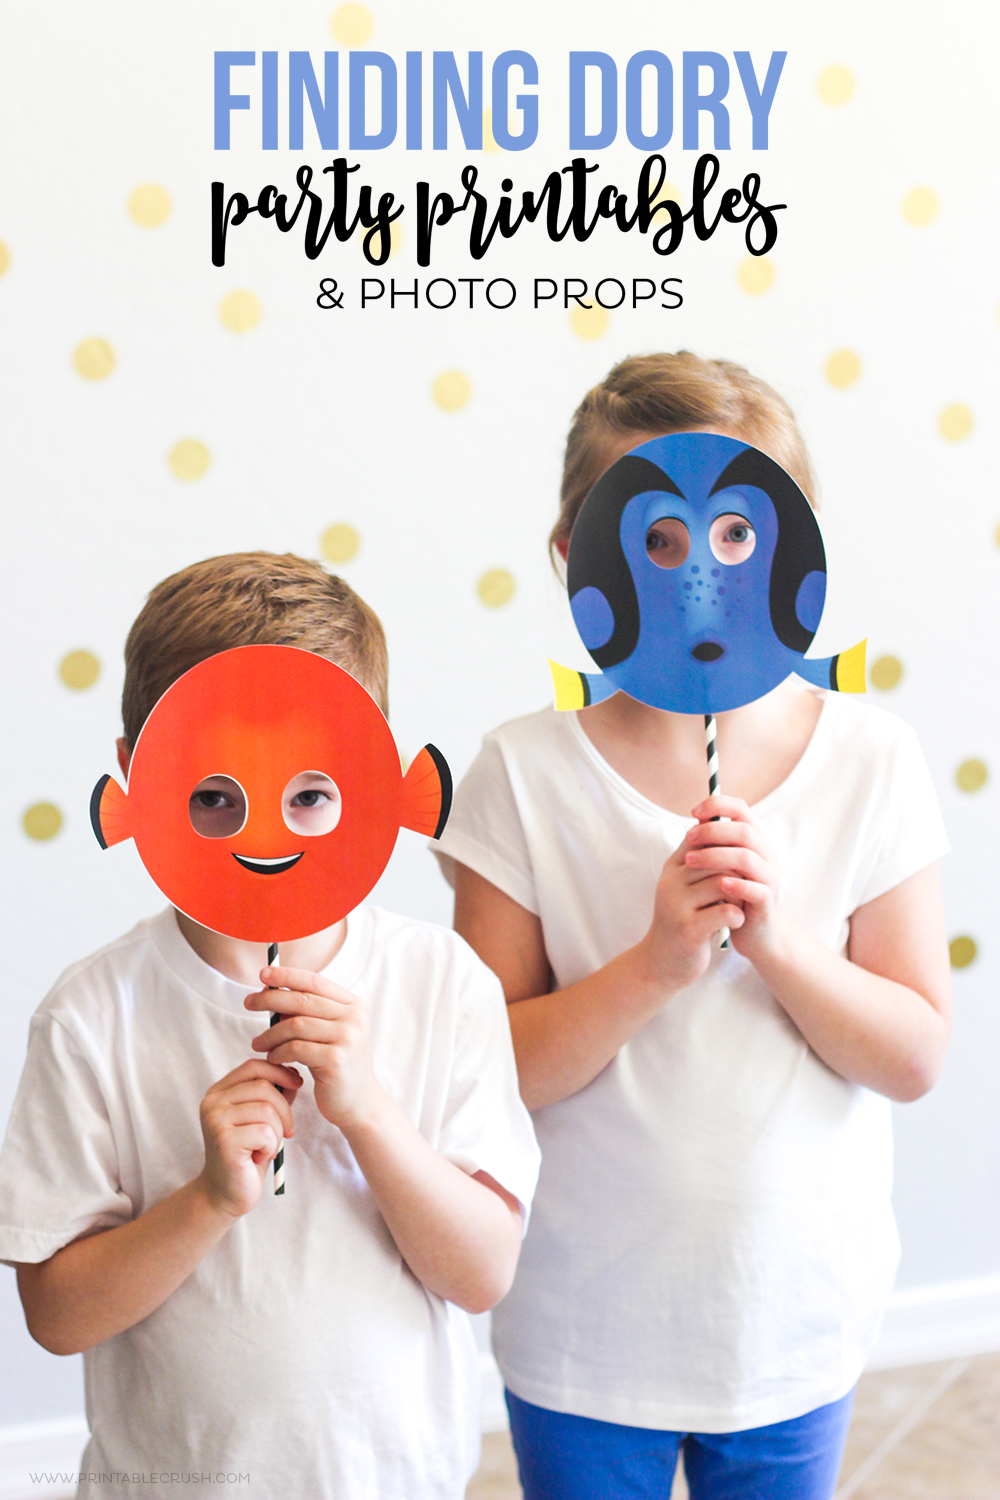 Photo Booth Props from Wonder Kids